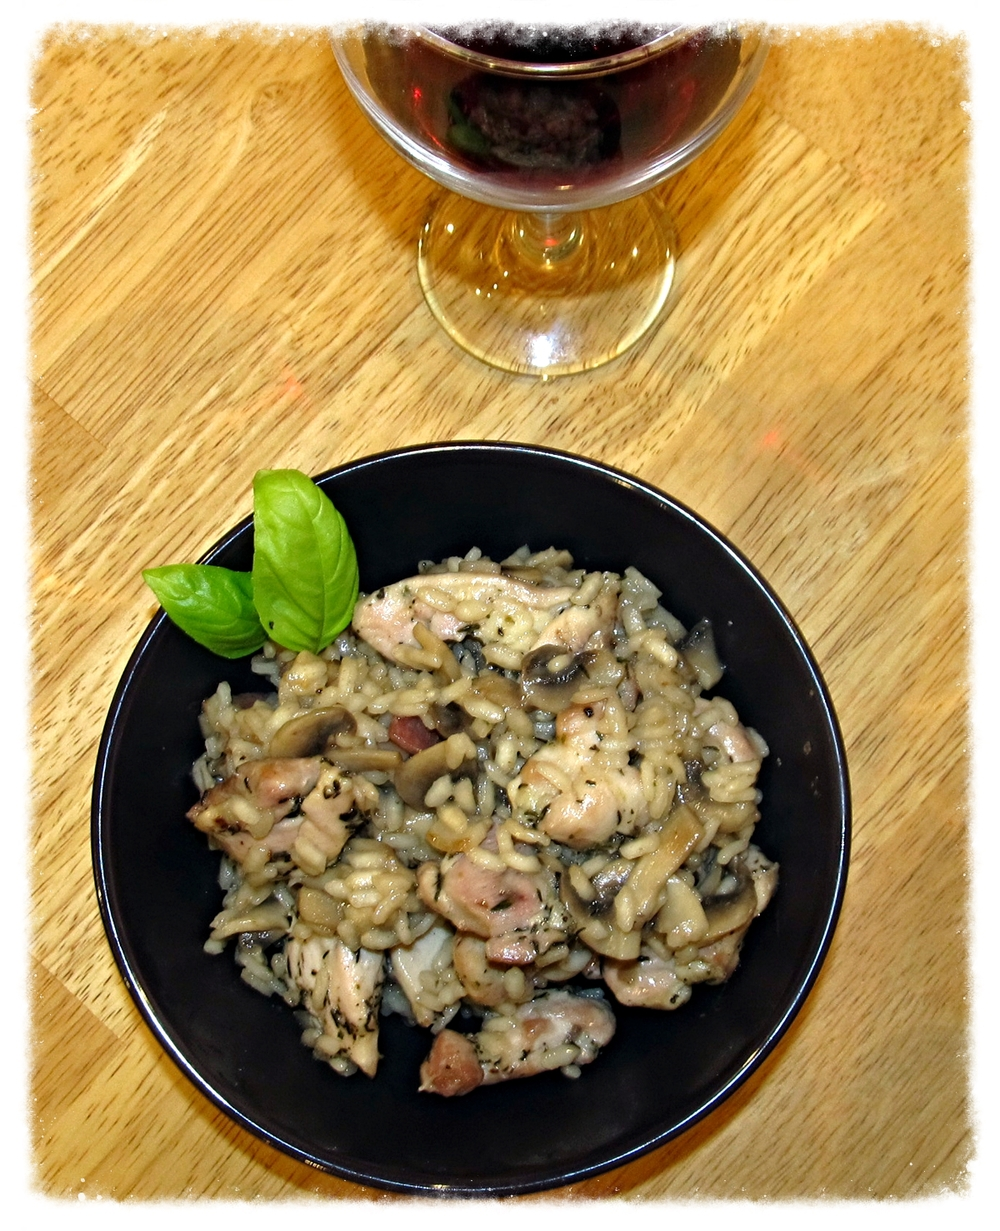 Dairy-free chicken, bacon and mushroom risotto tastes like unhealthy and fattening comfort food, but it's not bad for you at all.